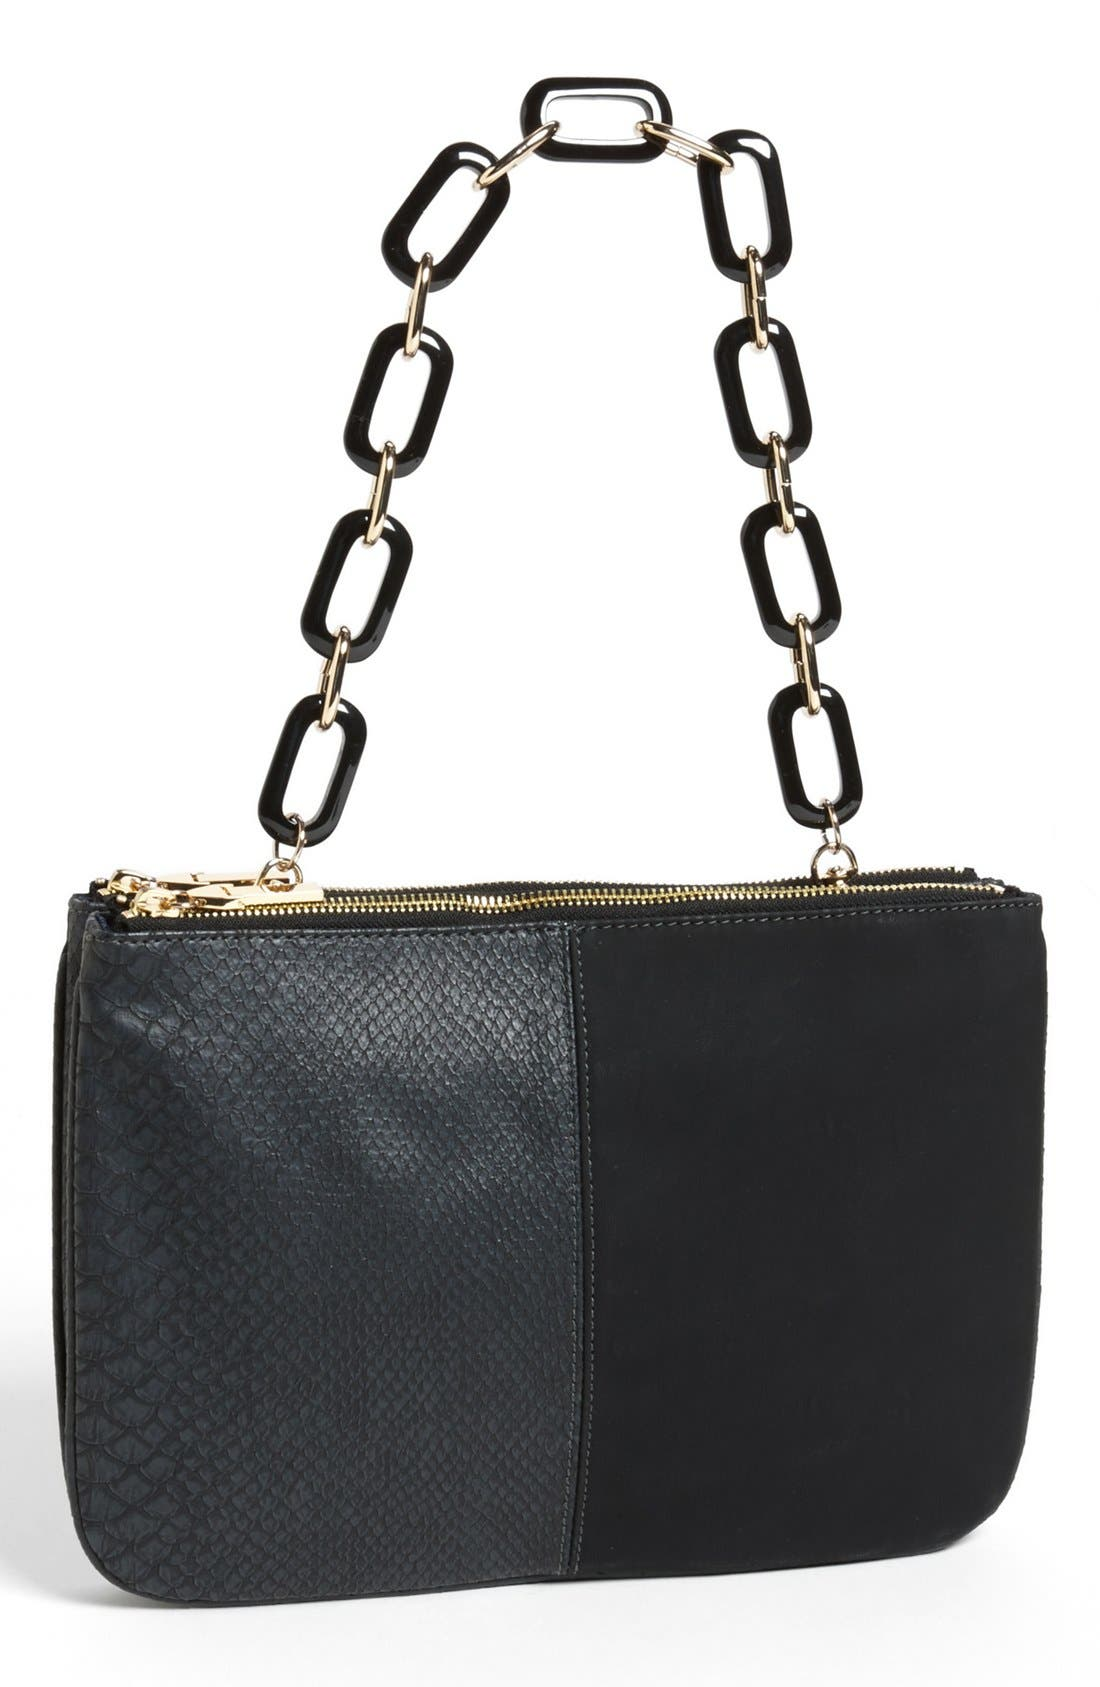 Alternate Image 1 Selected - French Connection 'VIP Party' Chain Clutch